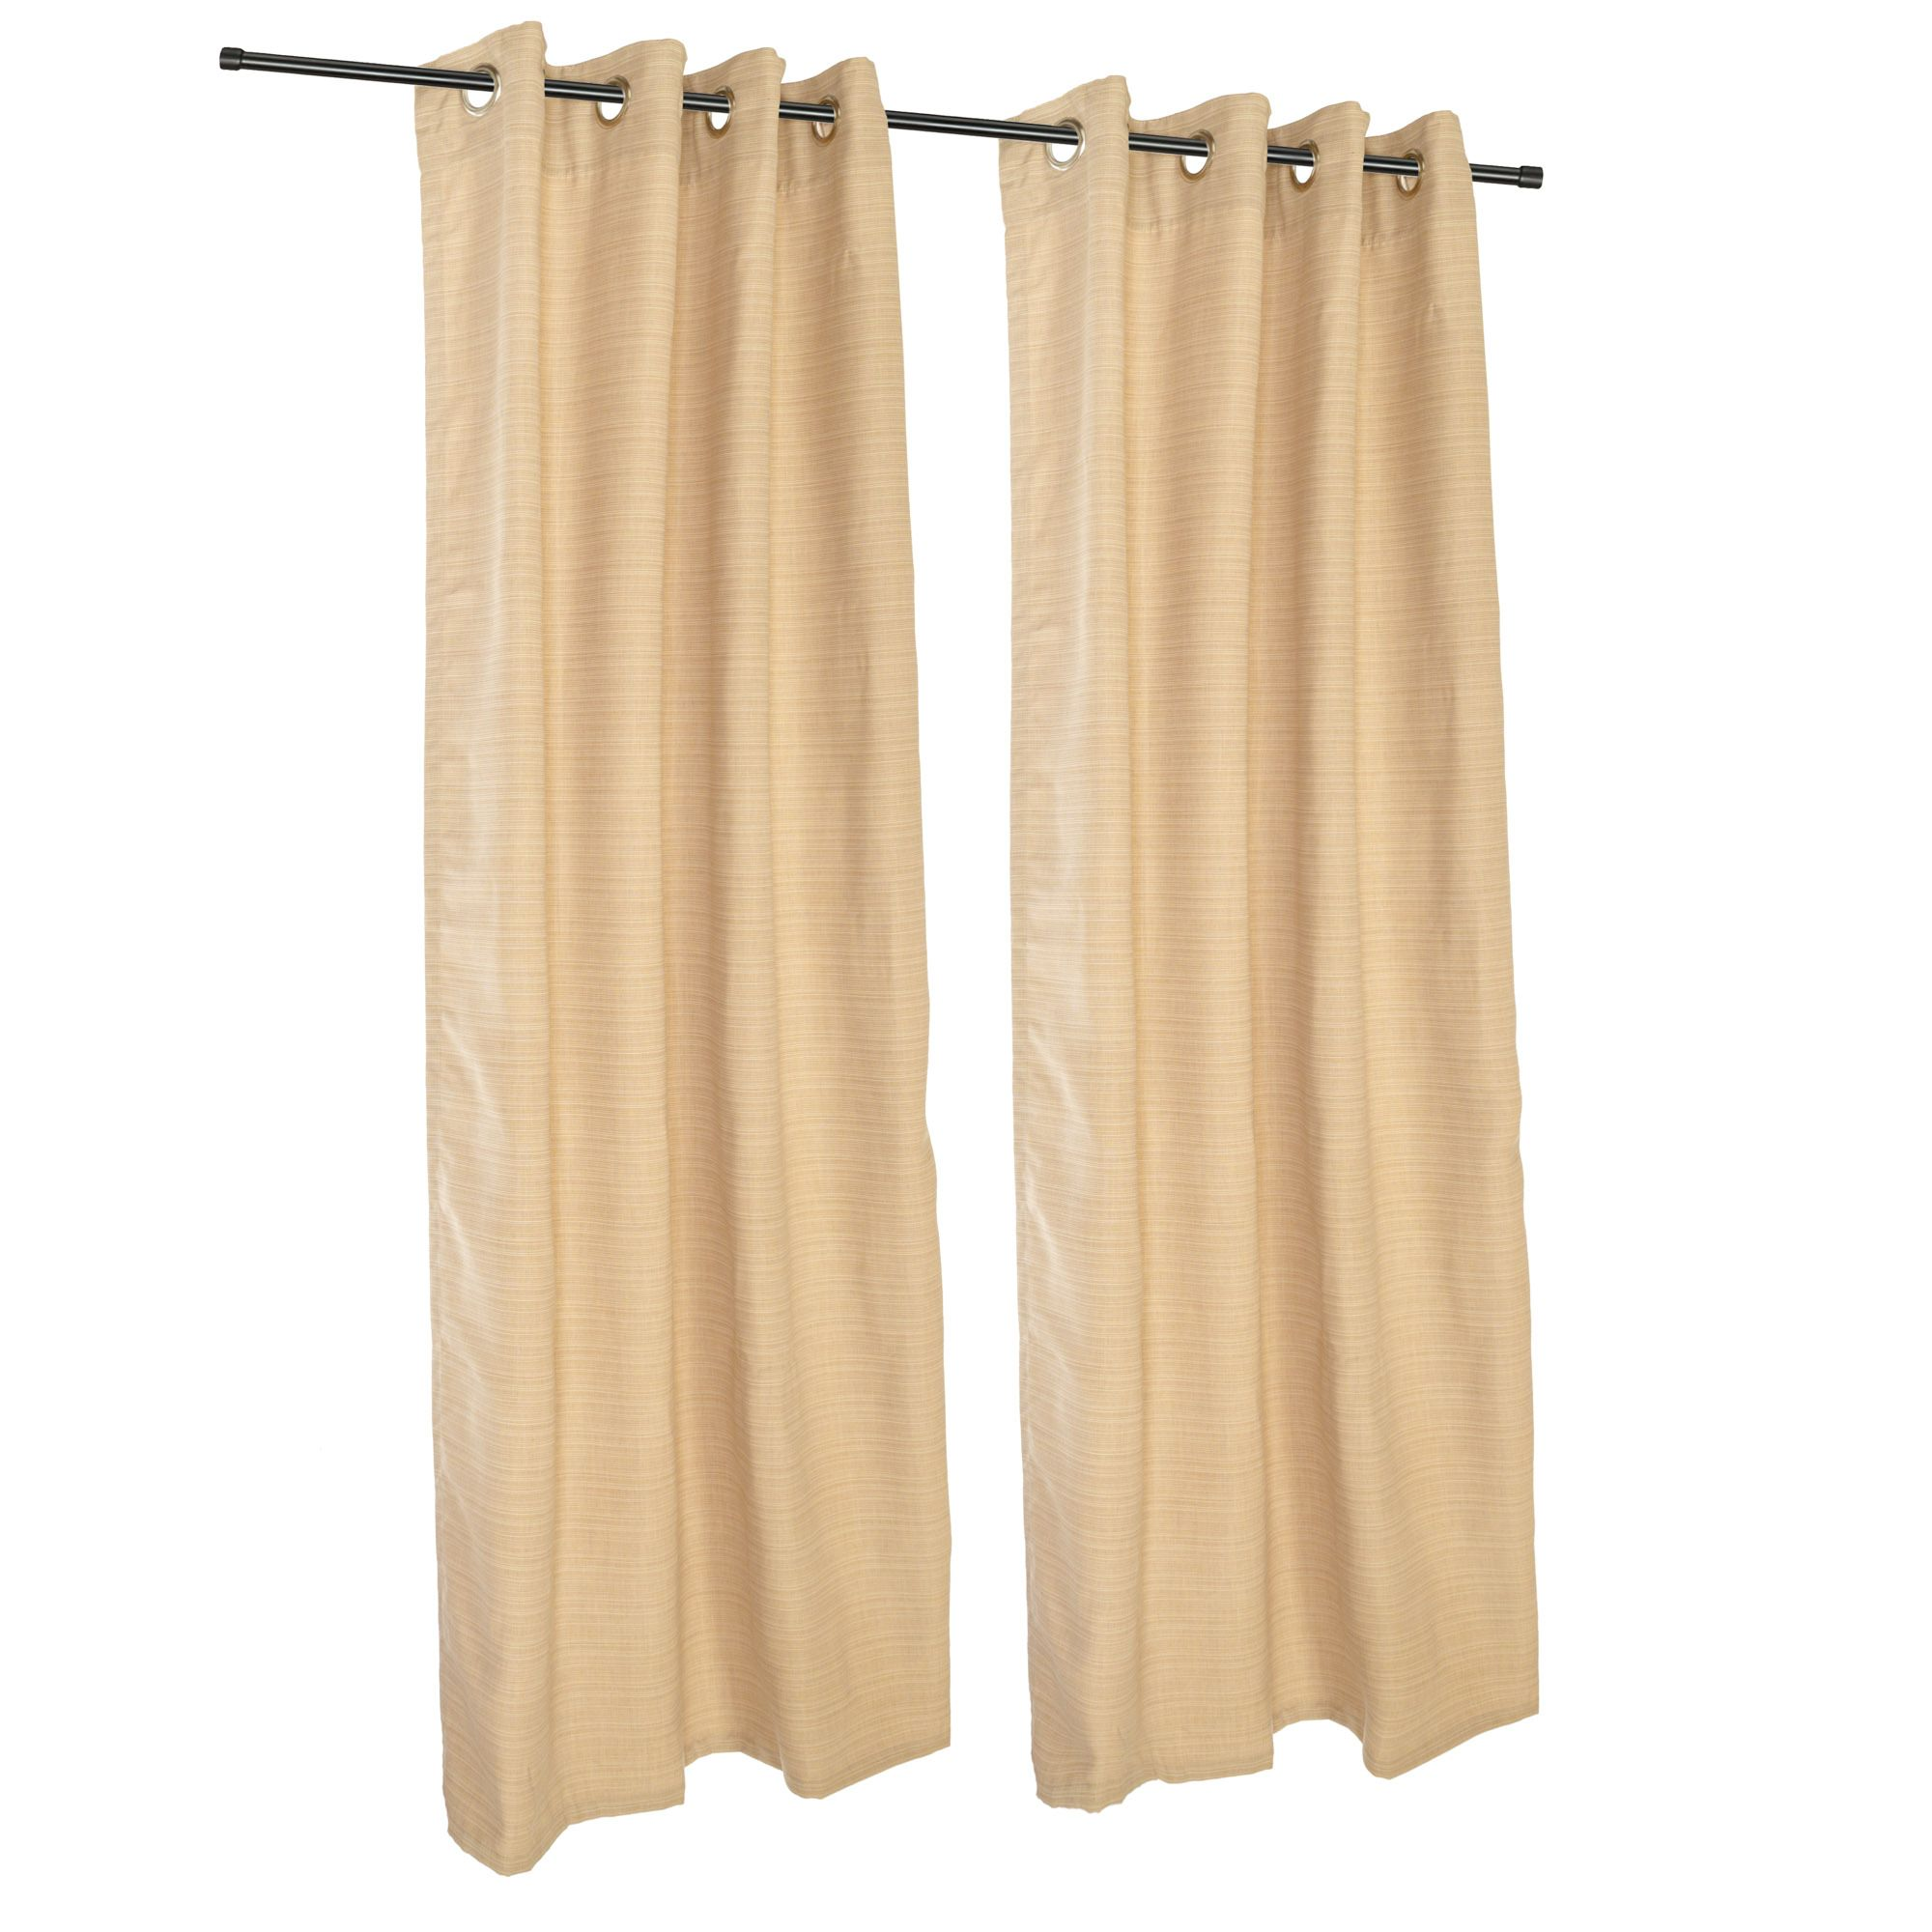 Sunbrella Dupione Bamboo Outdoor Curtain with Nickel Plated Grommets by Hatteras Hammocks